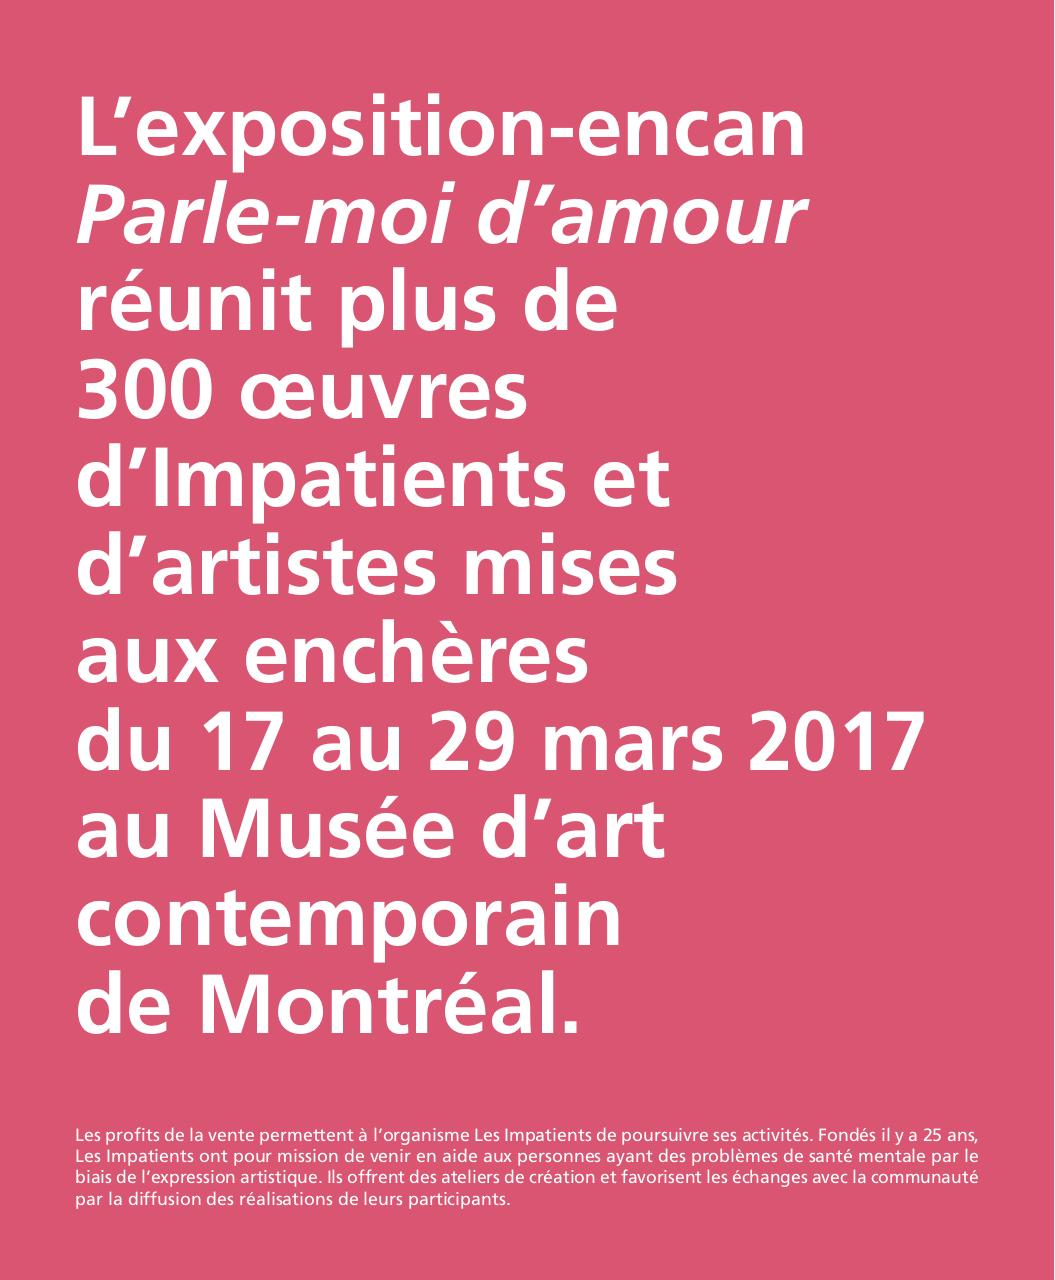 Aperçu du fichier PDF impatients-pma-catalogue-2017-vf-web.pdf